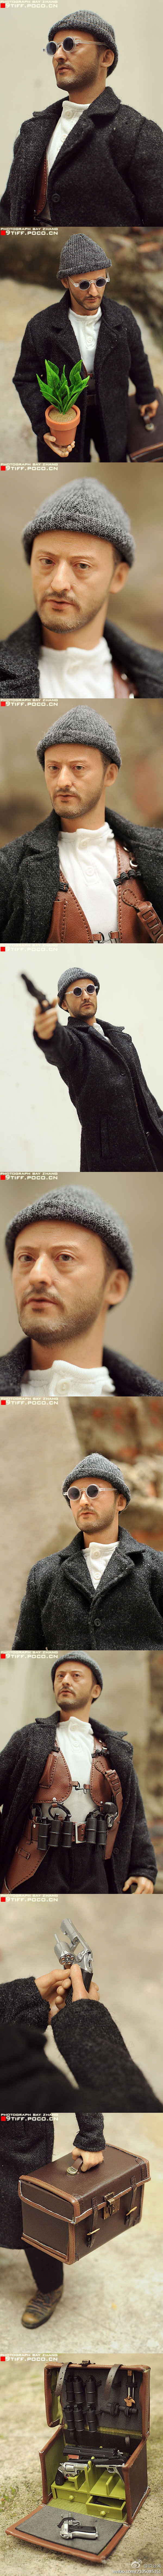 [ENTERBAY]   Leon: The Professional - 1/6 REAL MASTERPIECE - Página 3 7d790da7gw1dkufnpjqiwj